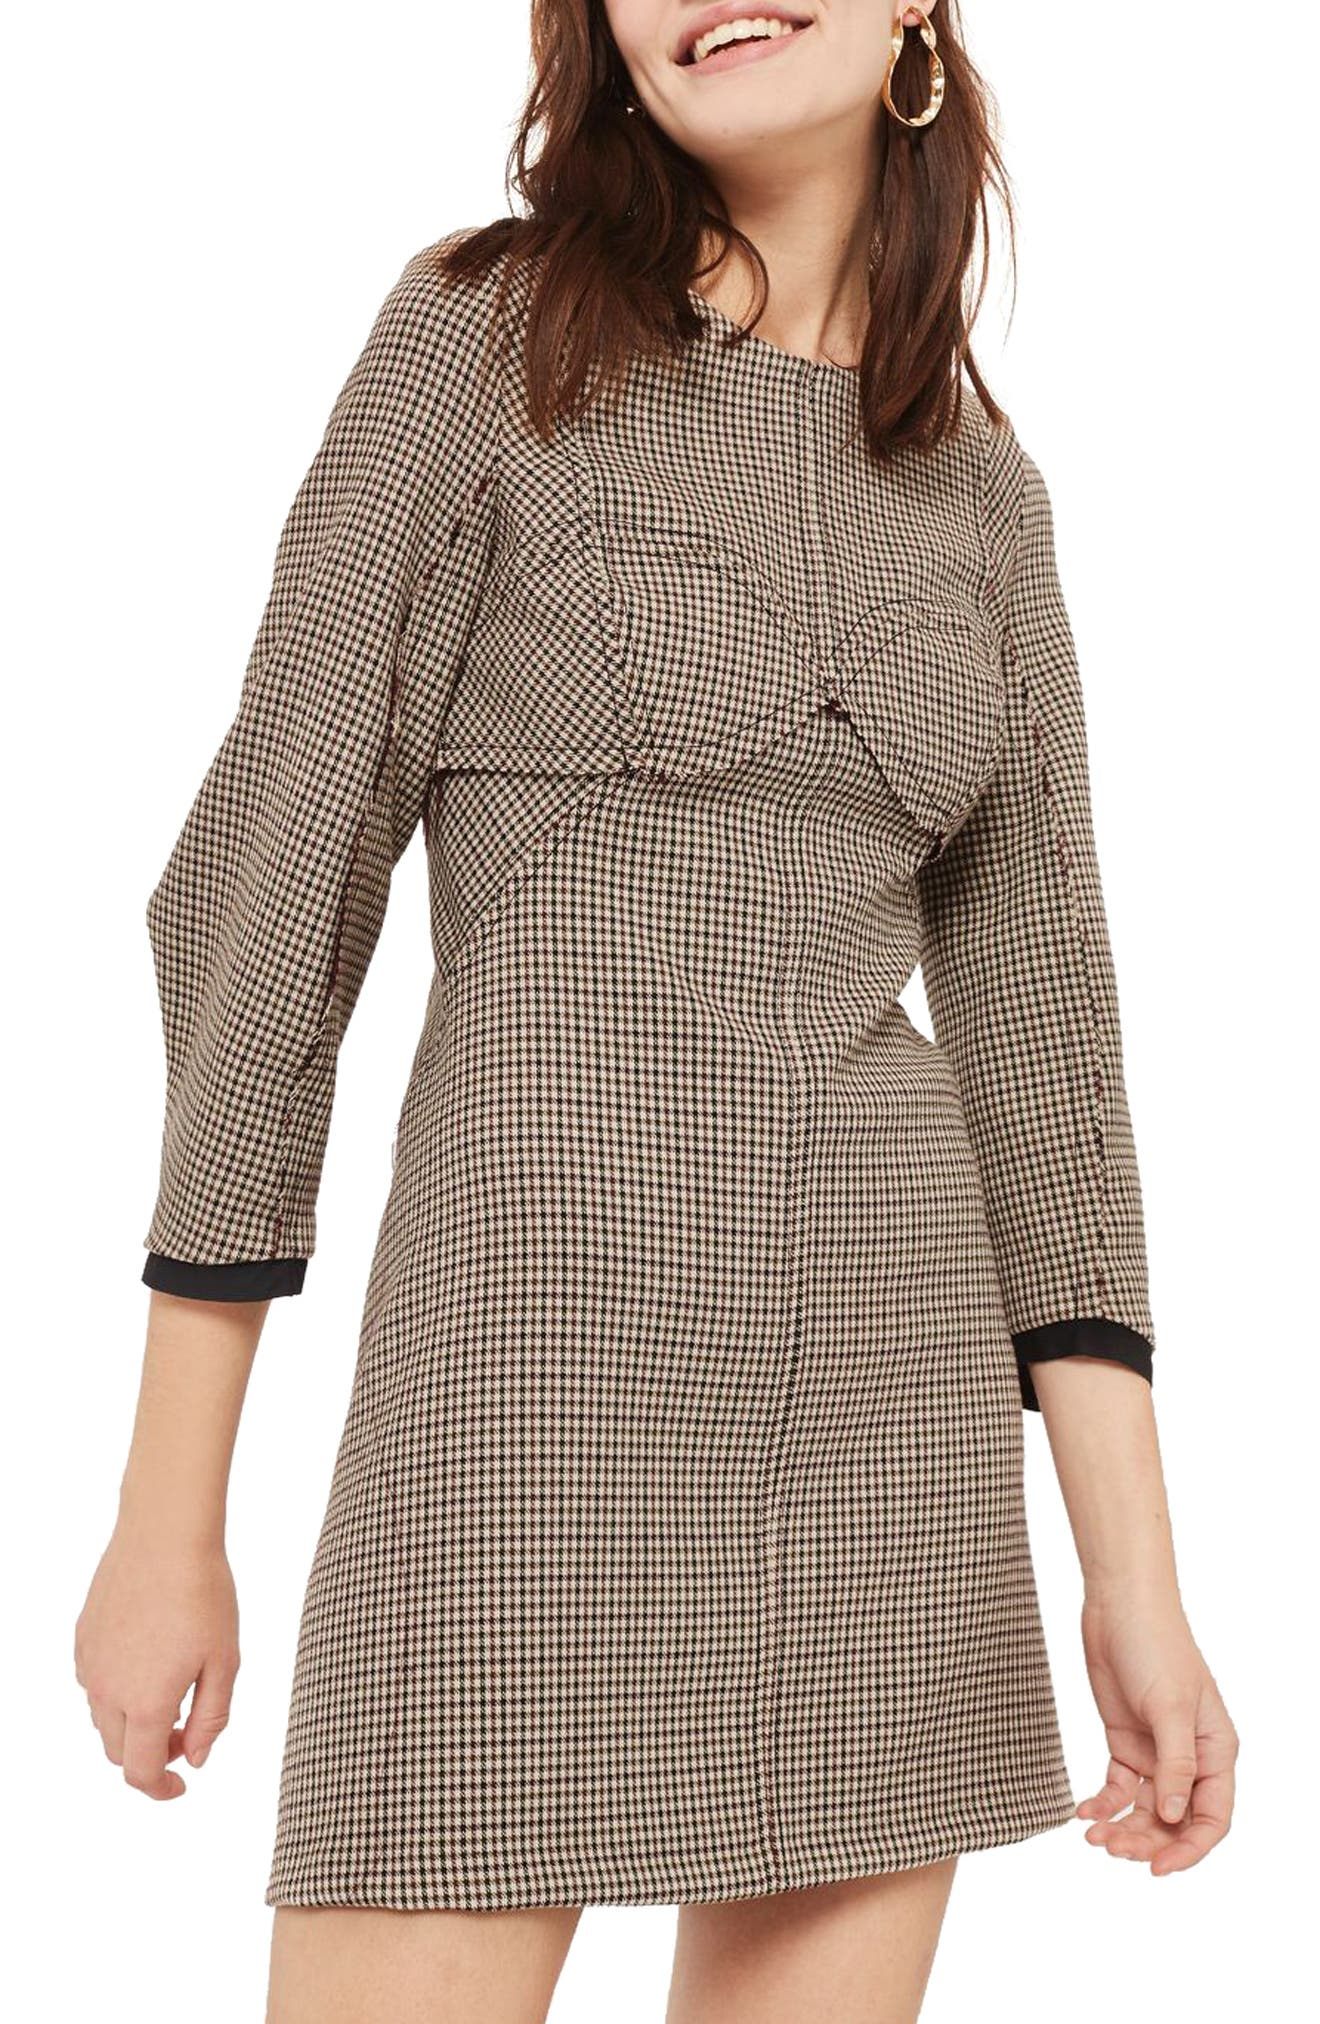 Alternate Image 1 Selected - Topshop Topstitch Check Shift Dress